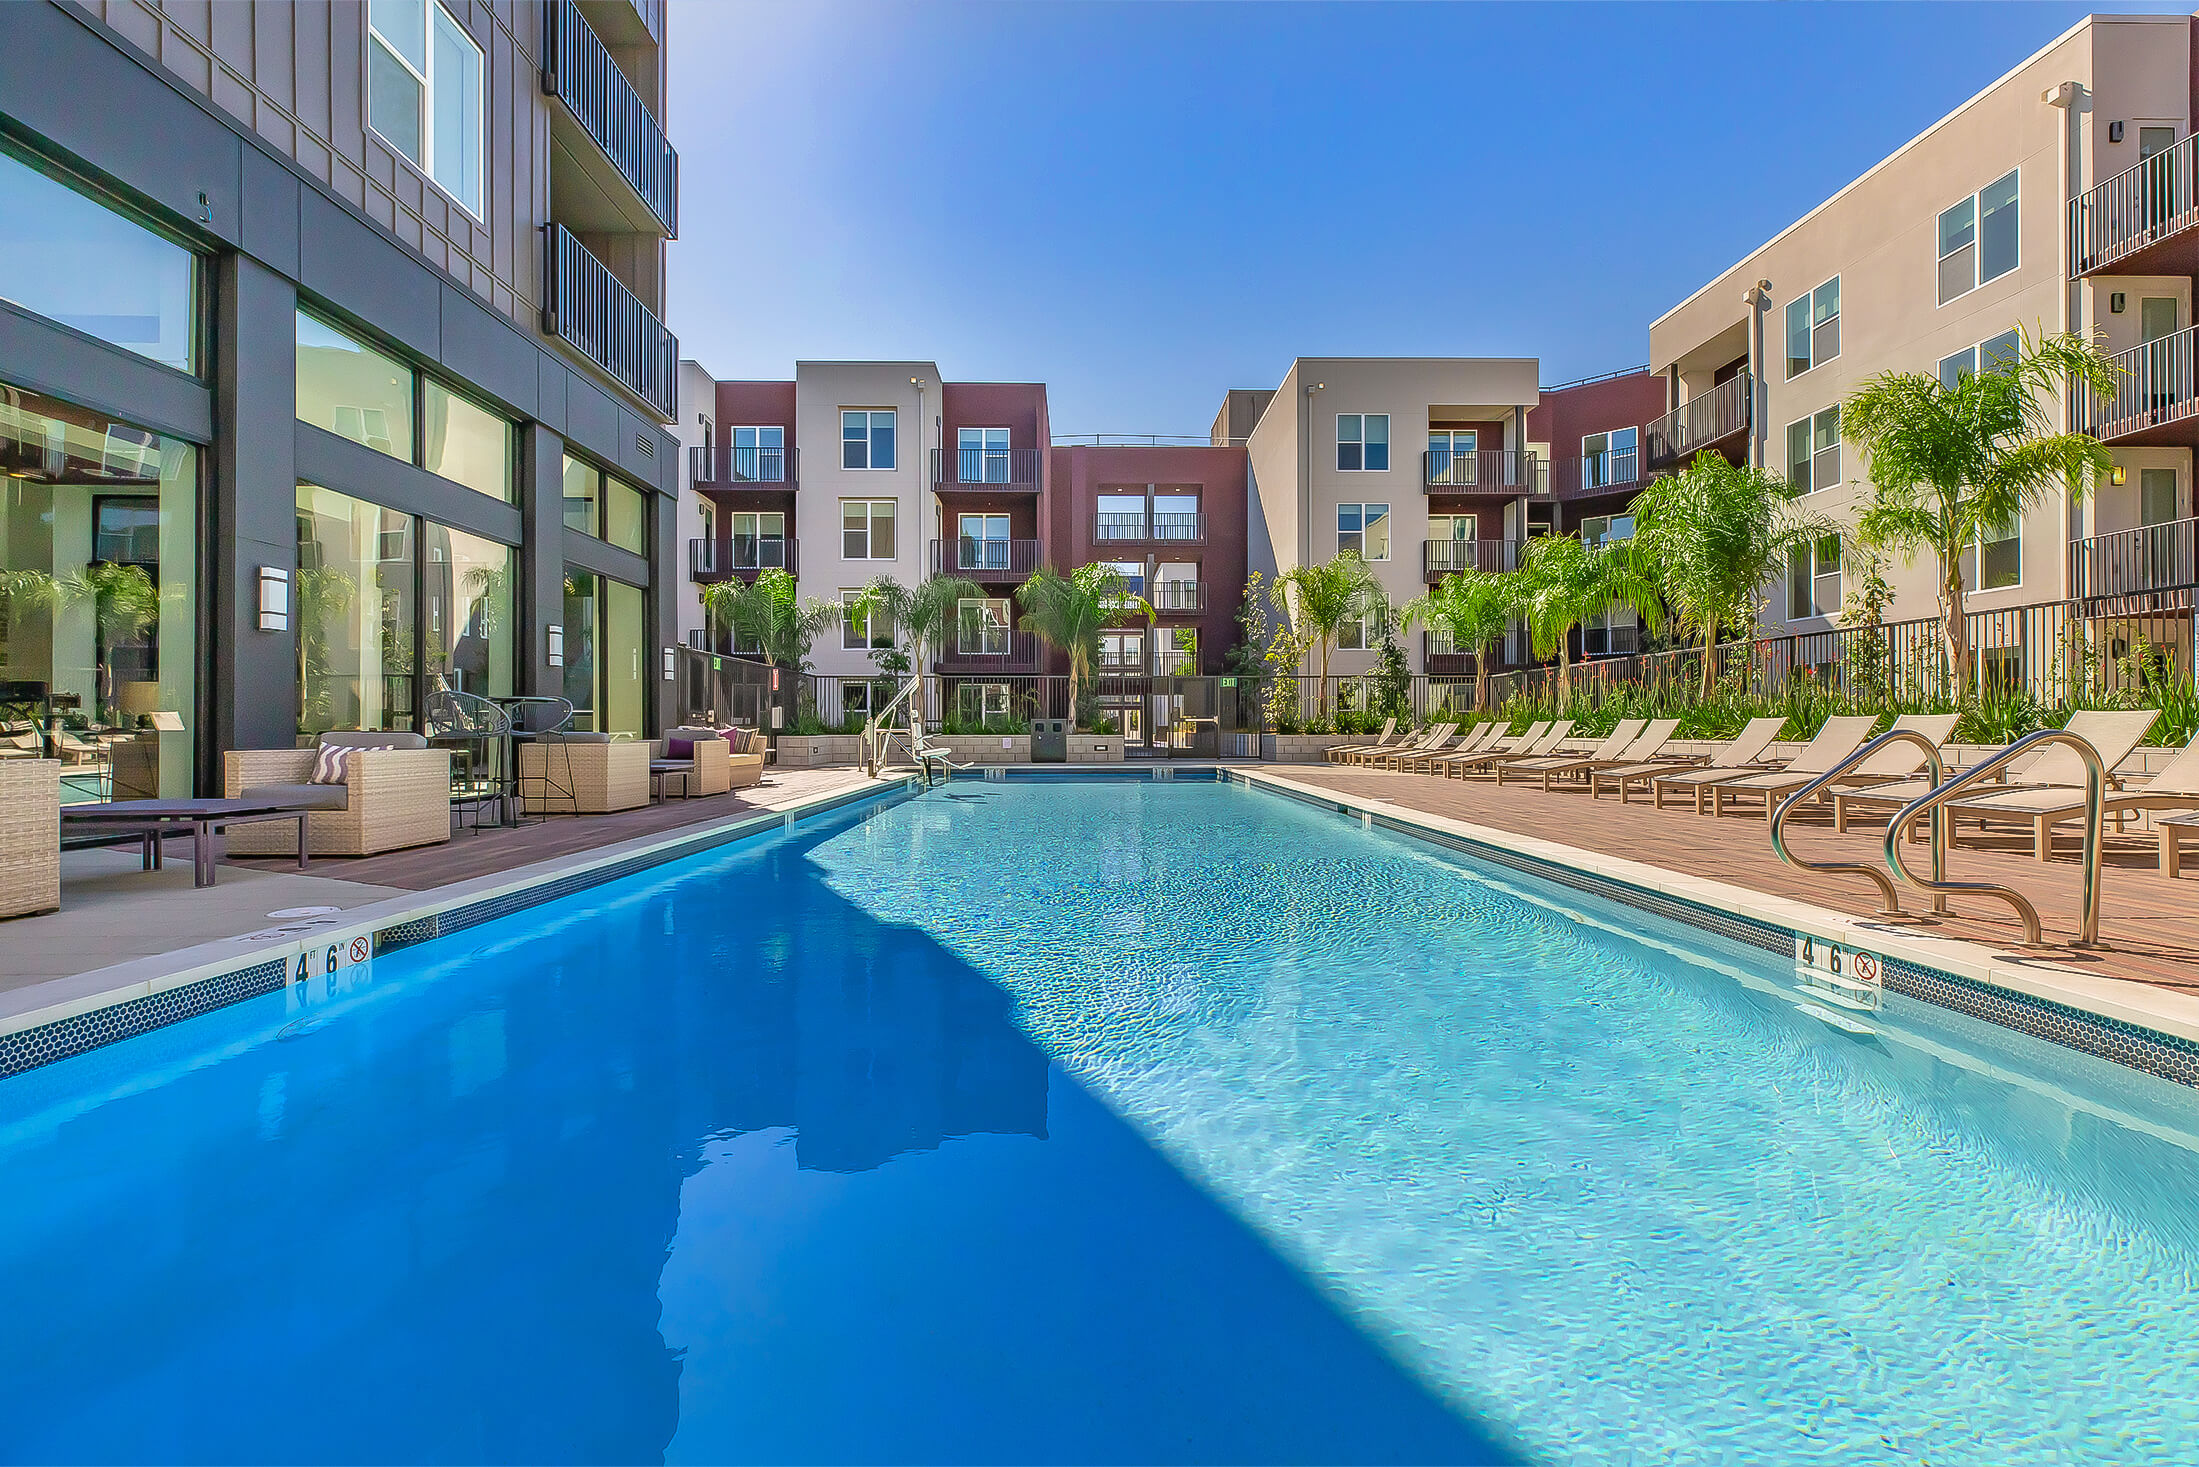 Luxury Apartments in San Jose CA For Rent | 1, 2, and 3 ...